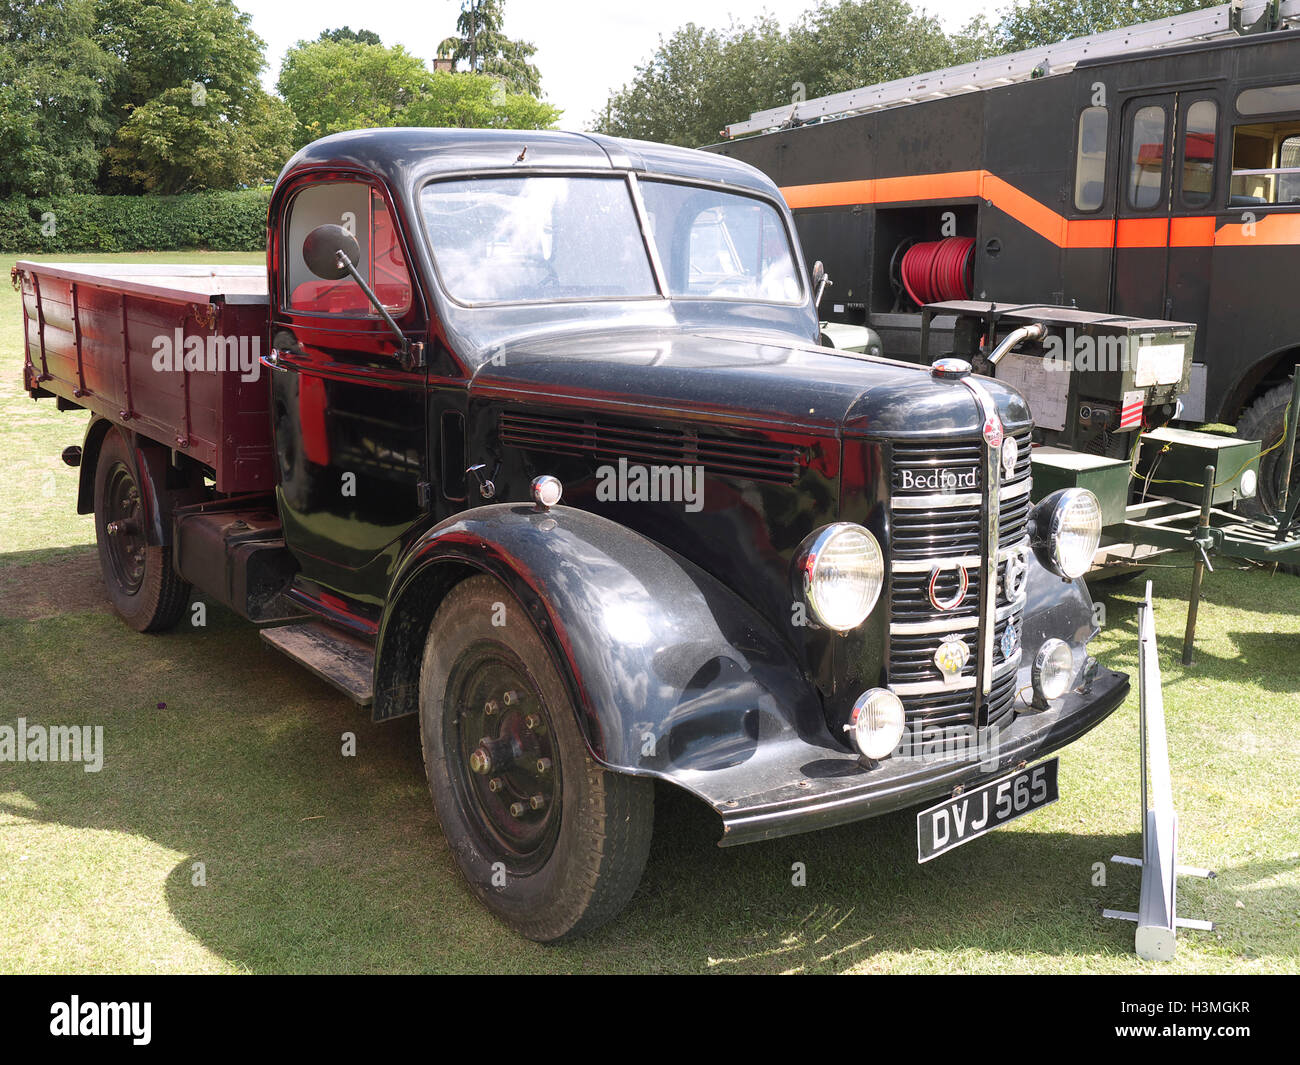 Vintage Bedford pick up truck on display at Baston in the blitz weekend - Stock Image